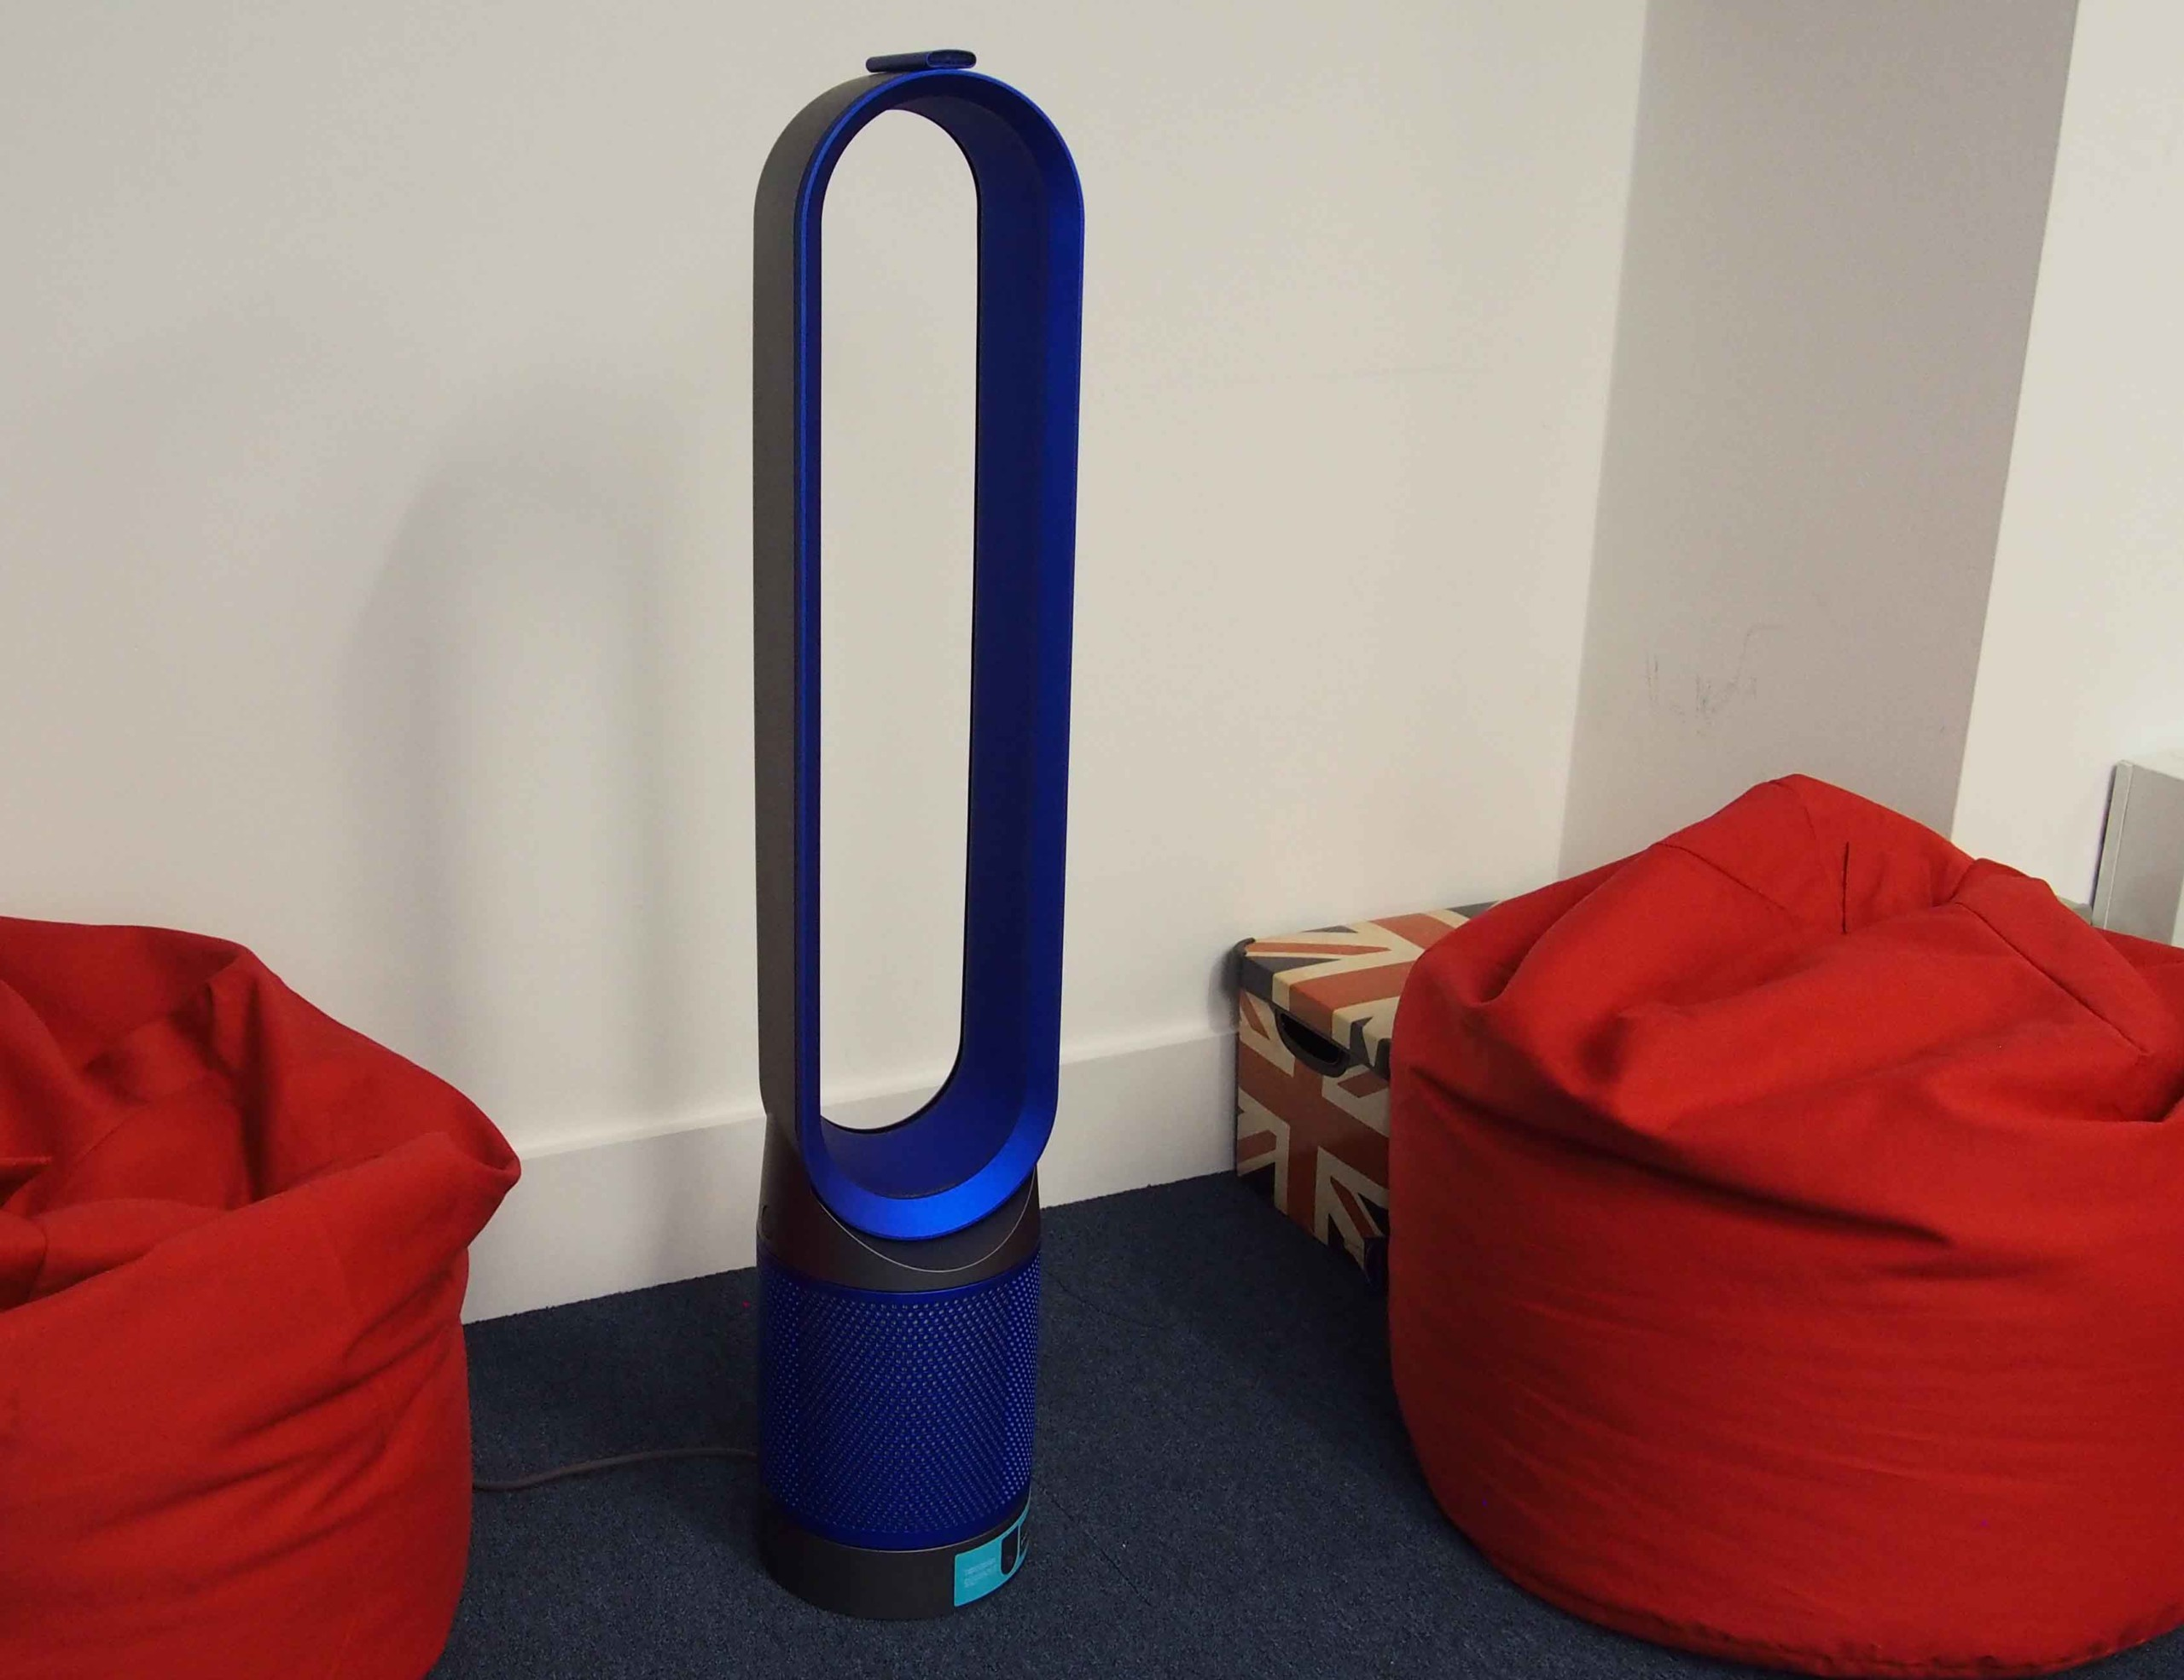 9 Smart home devices for hot summer days - Dyson Pure Cool 02